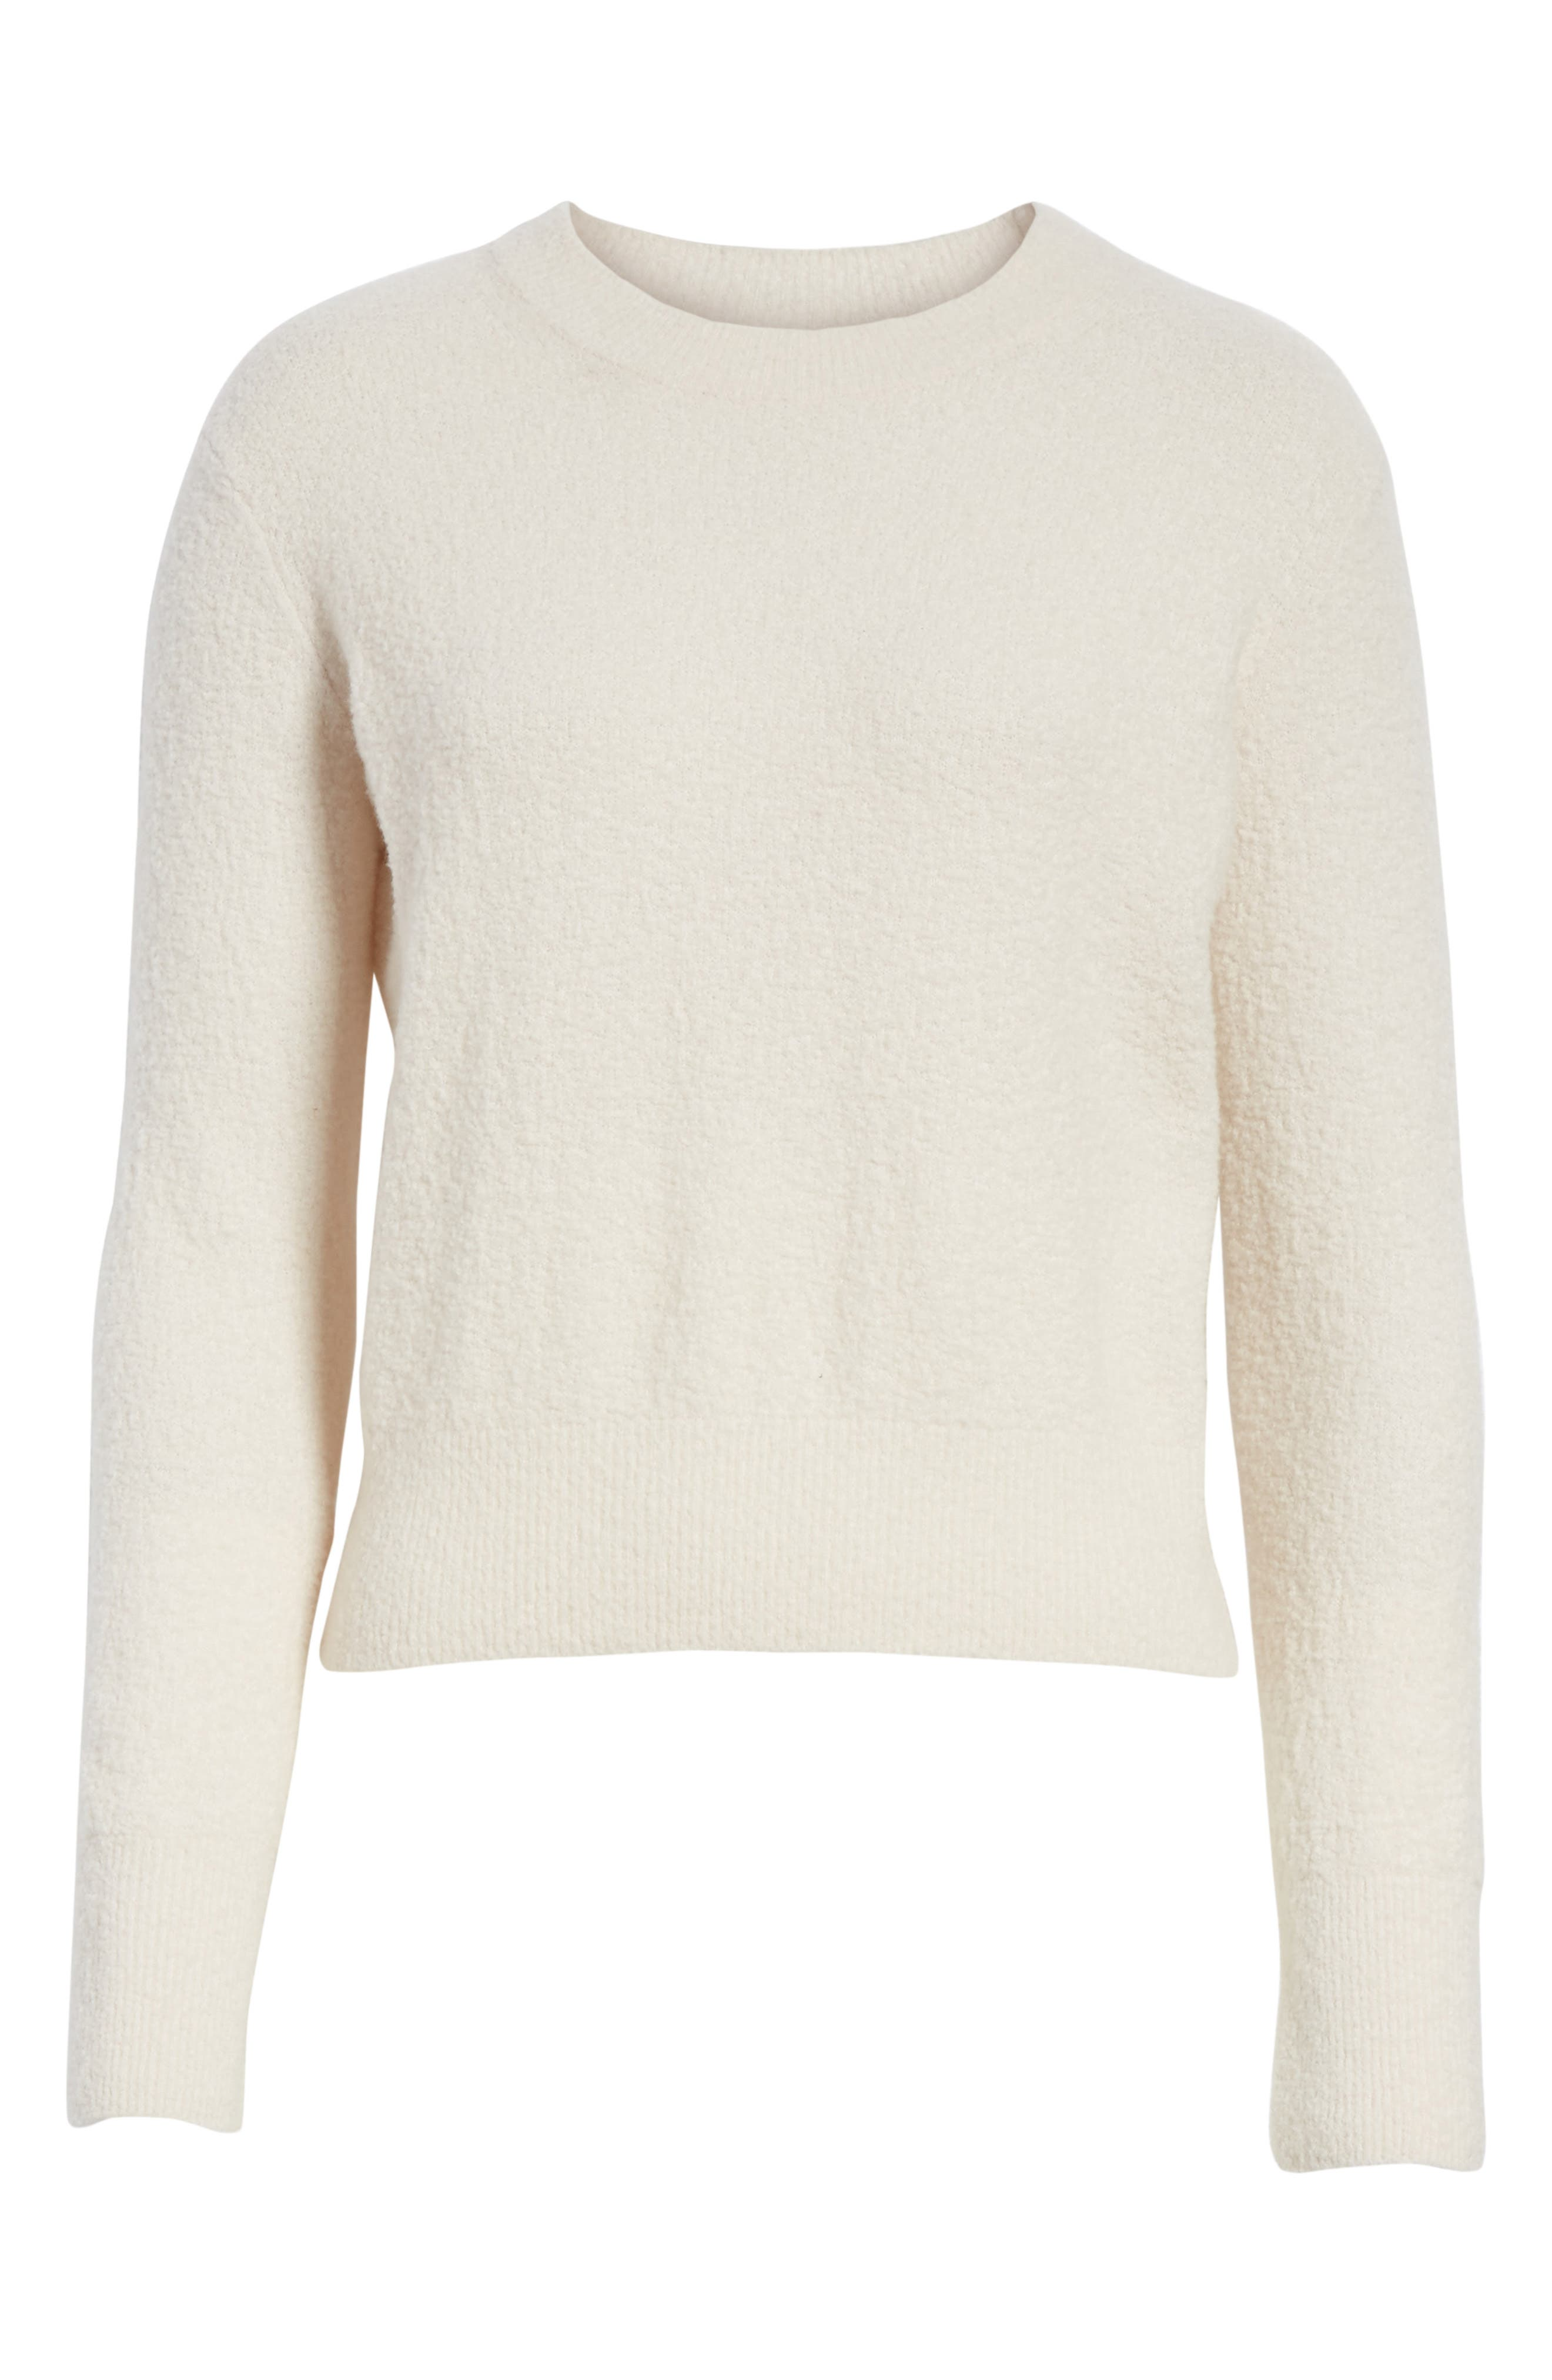 Crewneck Wool Blend Sweater,                             Alternate thumbnail 6, color,                             Off White